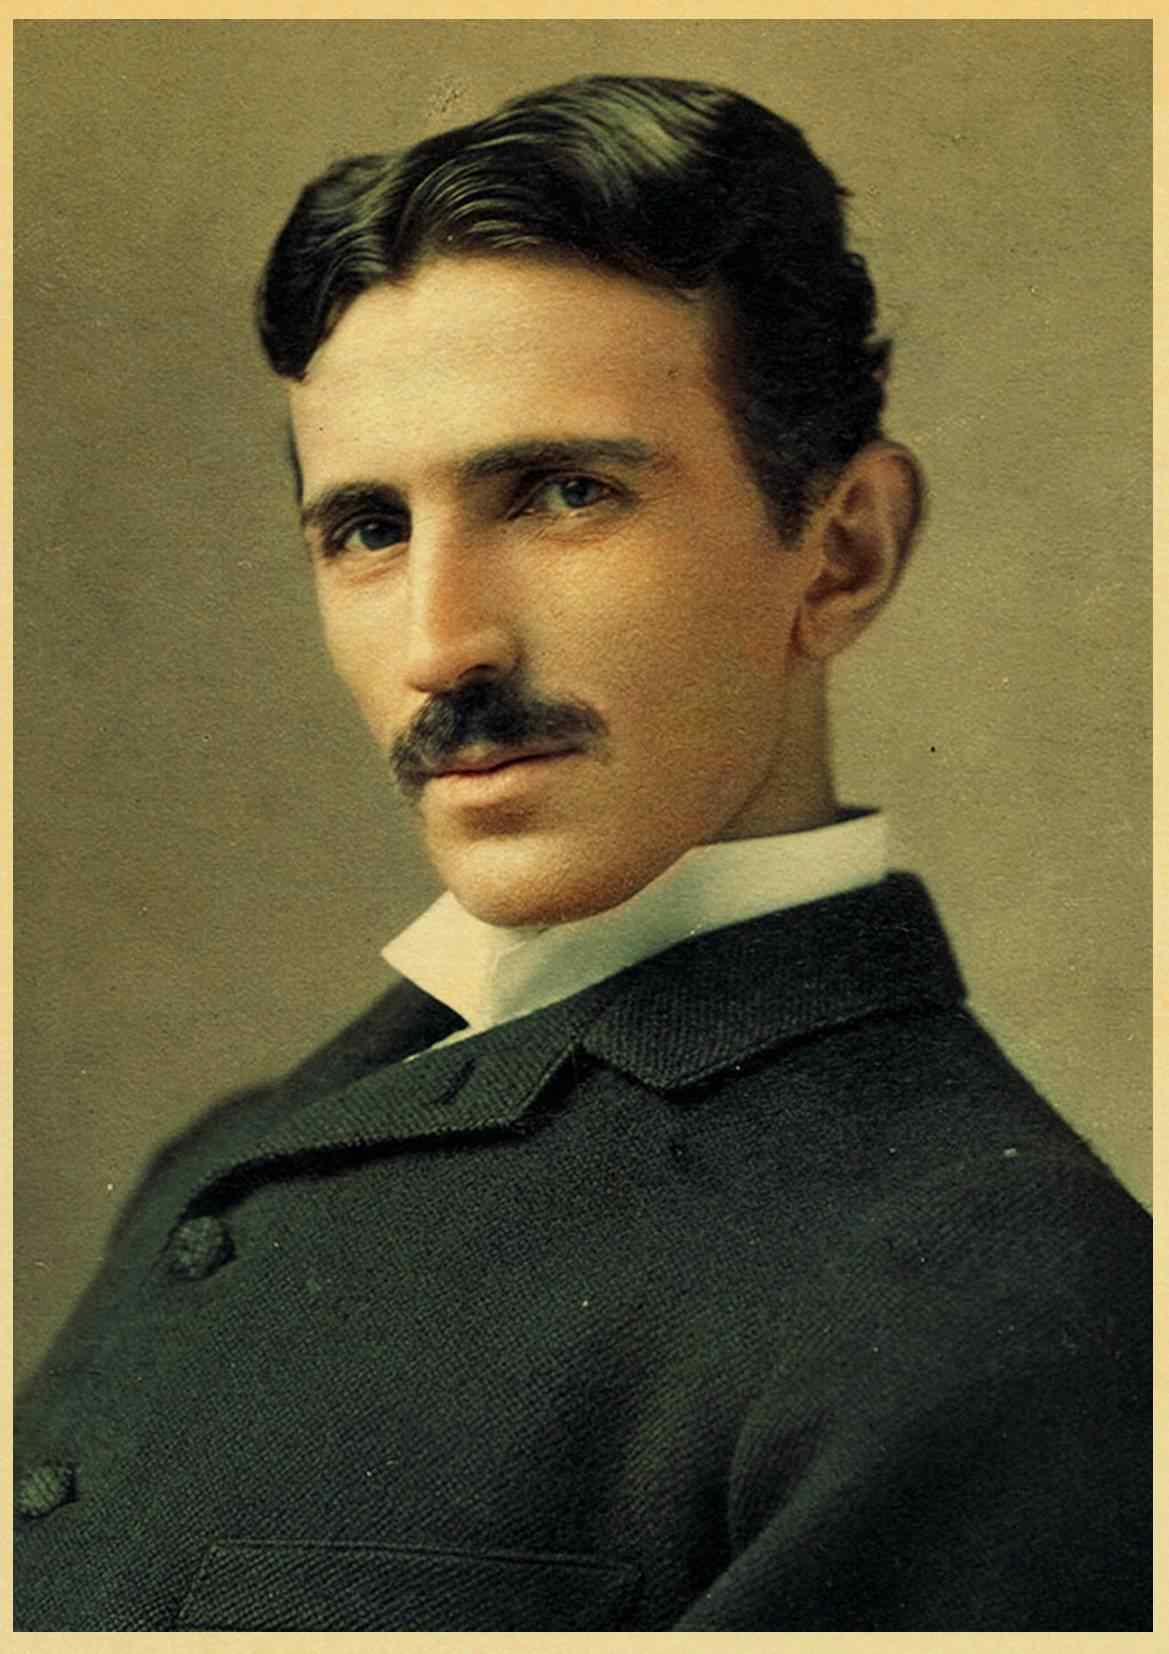 famous scientists nikola tesla retro poster home furnishing decoration kraft game poster drawing painting wall stickers 42x30cm